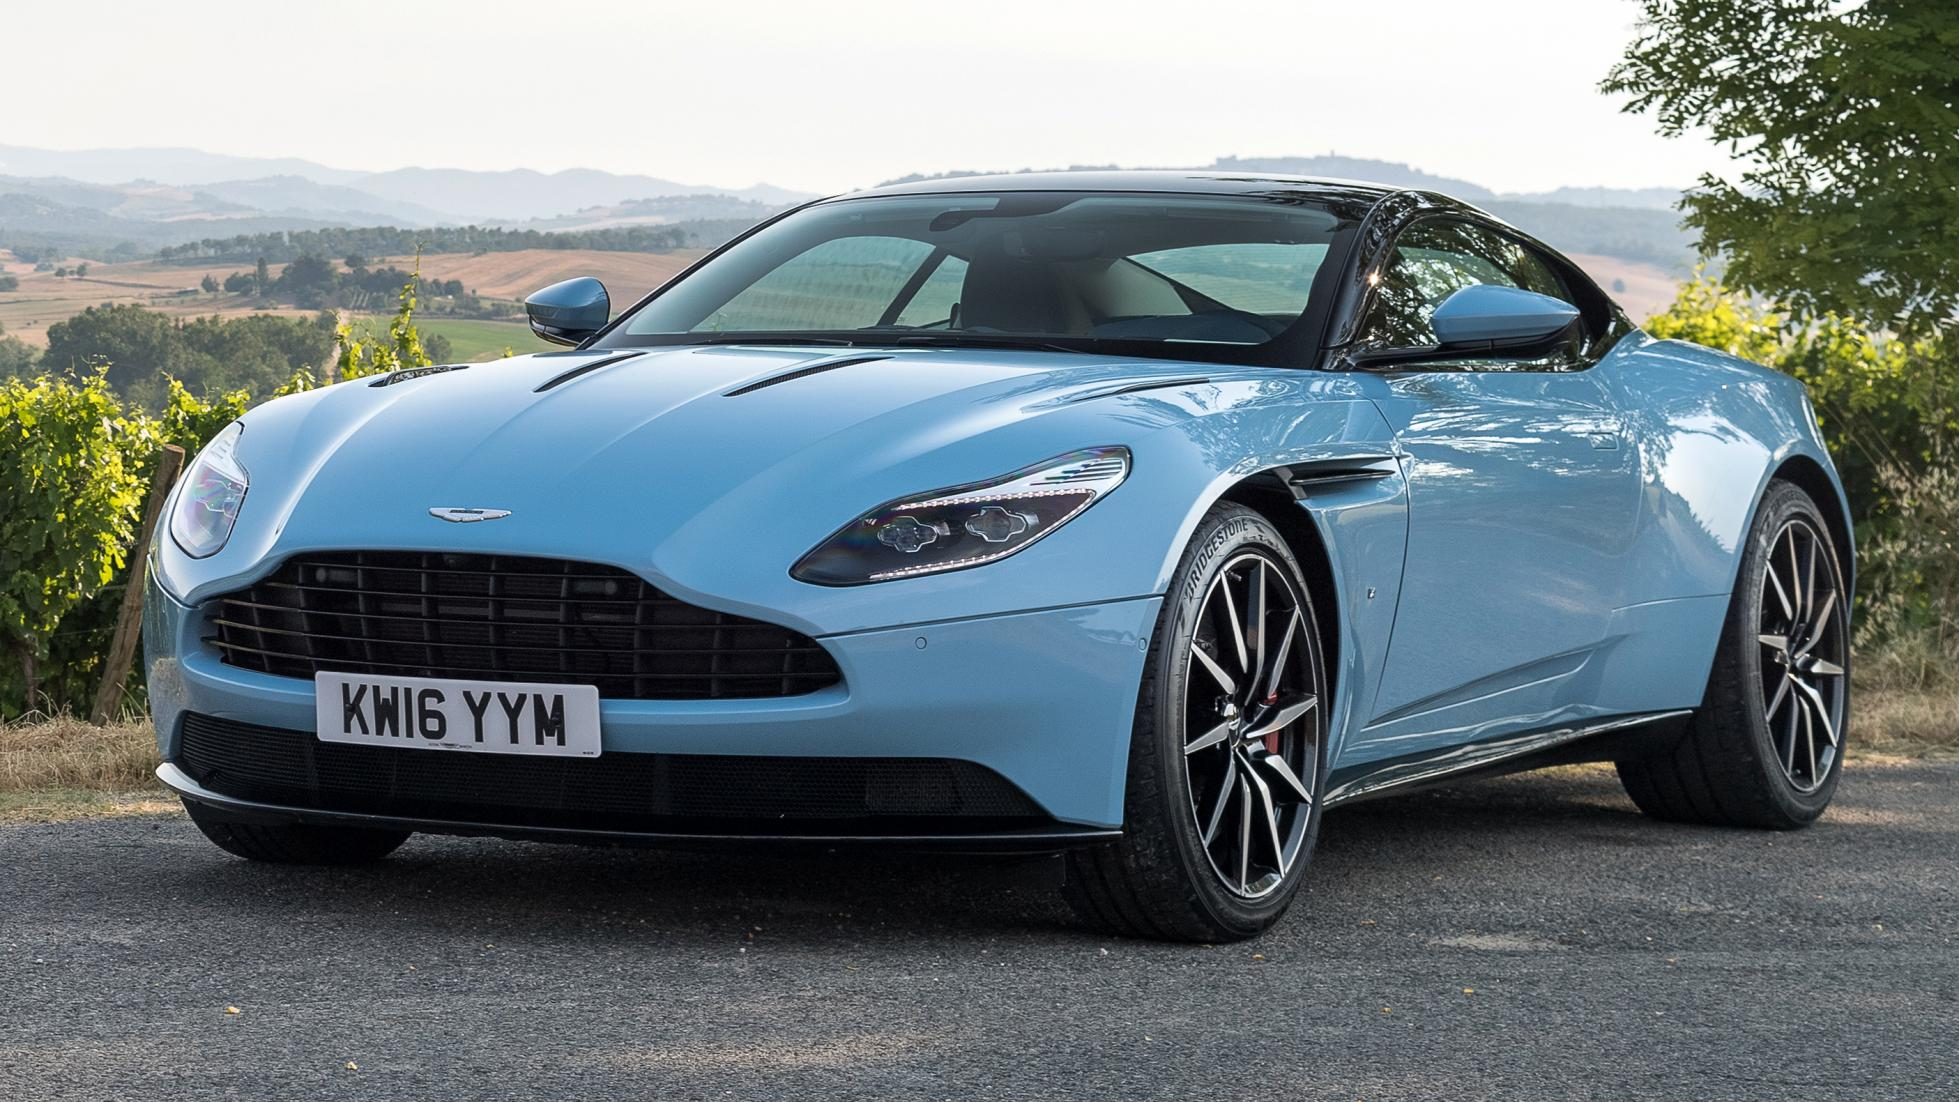 Aston Martin DB11 – supercar